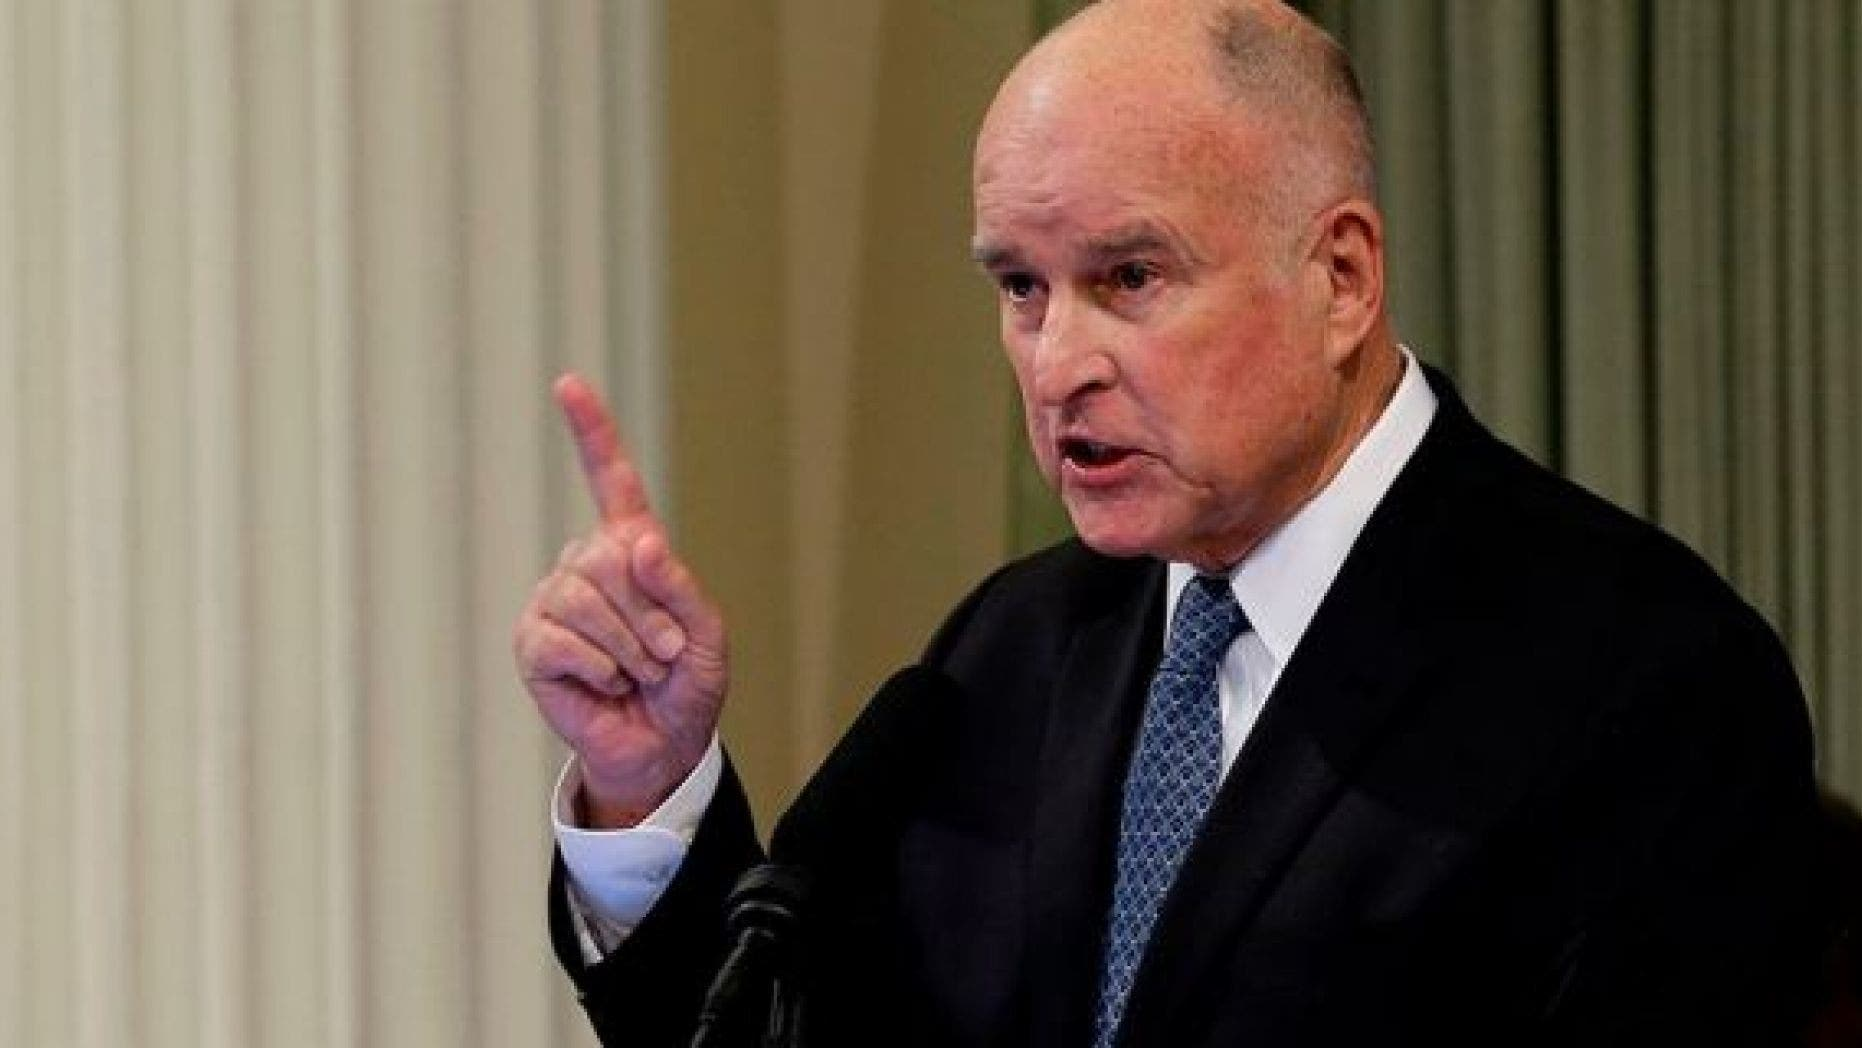 Jerry Brown, who recently completed his second stint as California's governor, will update the Doomsday Clock. (Associated Press)